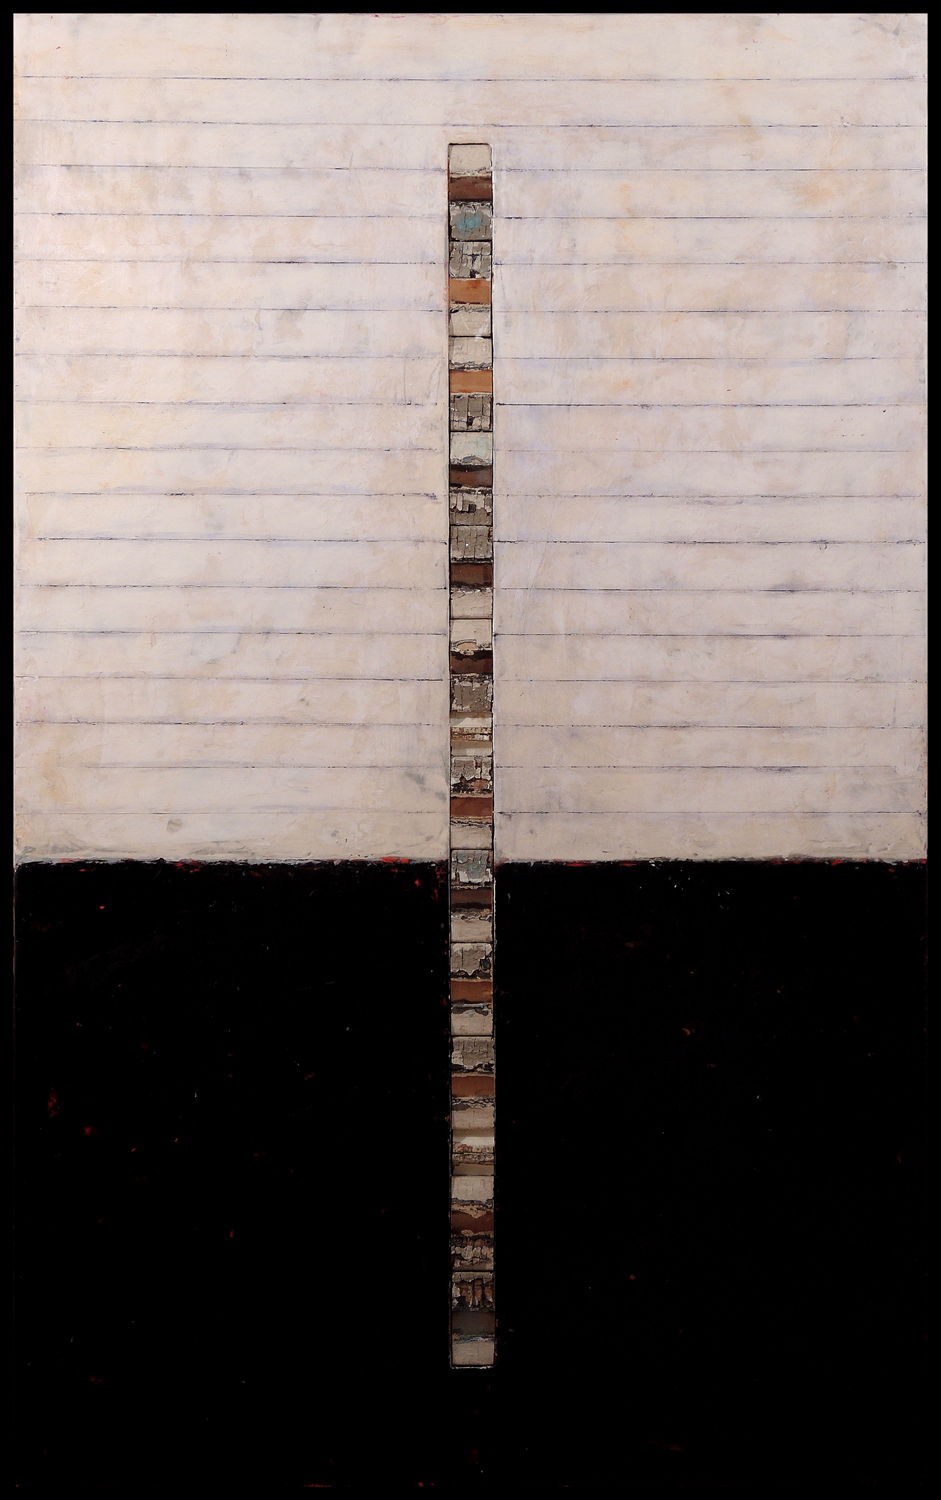 """Litany, 48"""" x 30"""" x 1.5"""", encaustic, oil and objects on wood panel, 2013"""